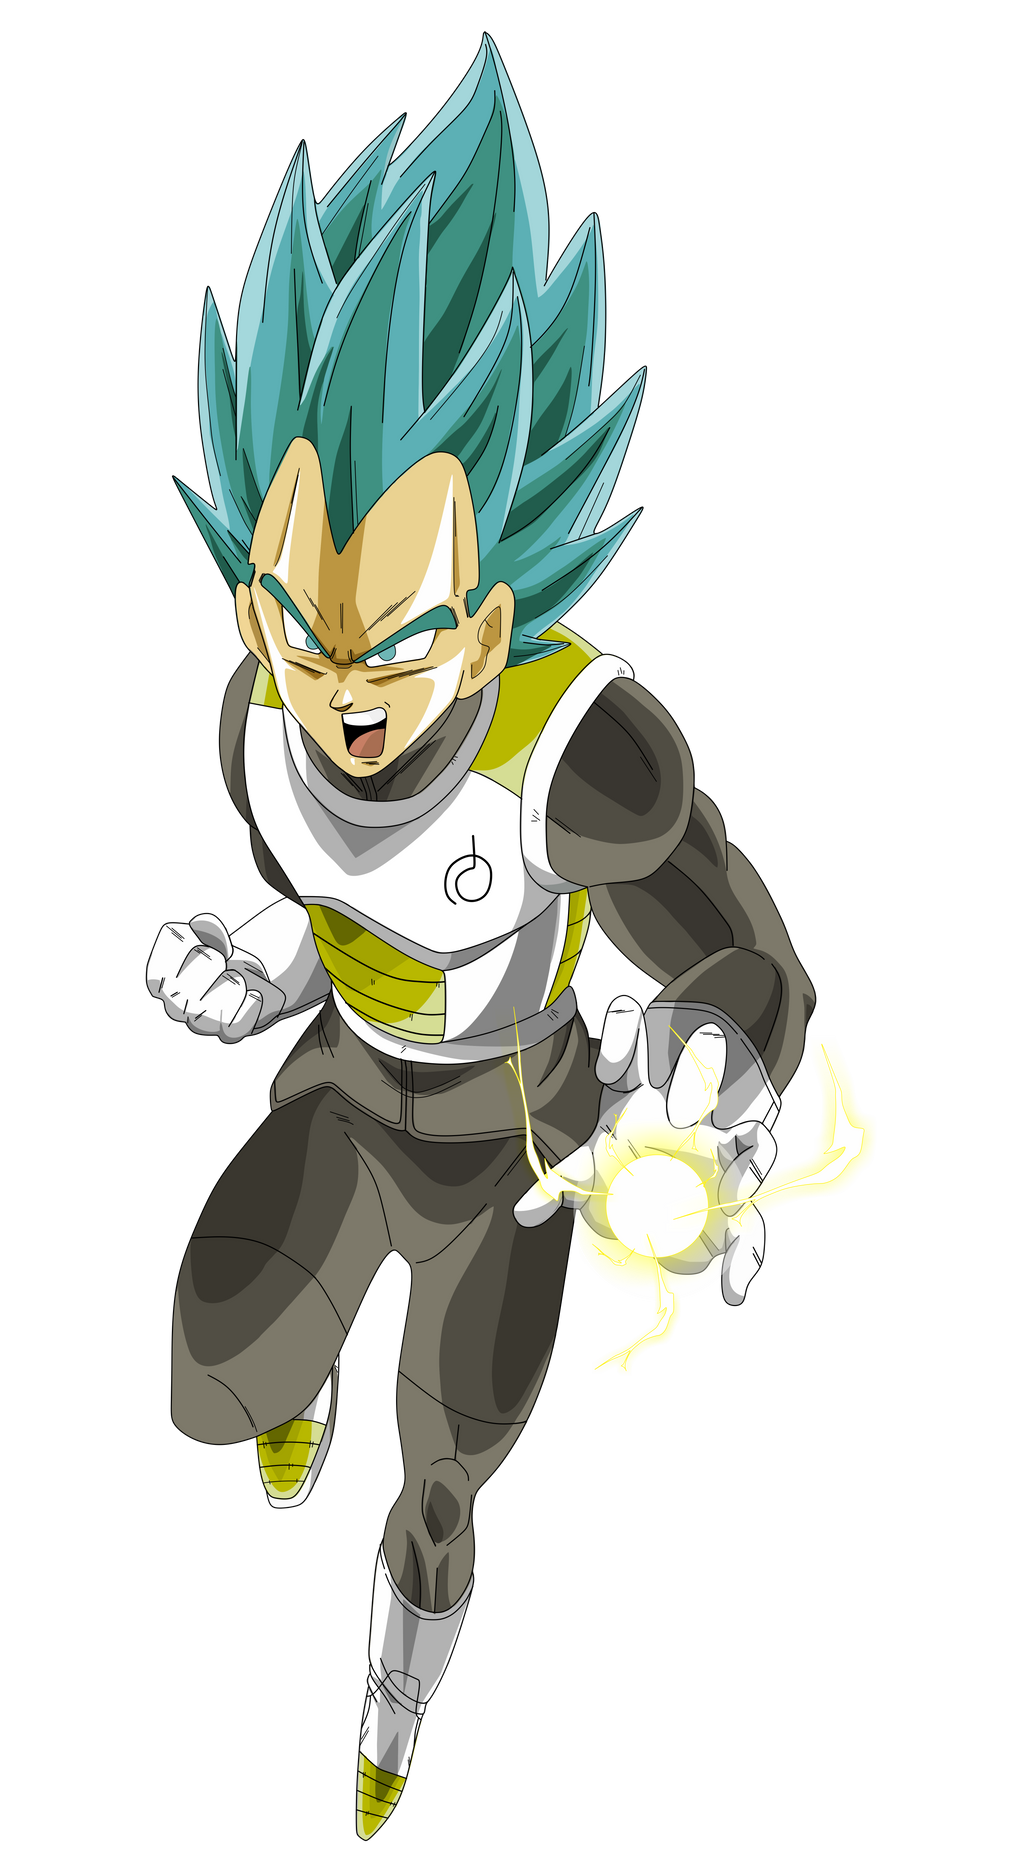 dragon ball xenoverse how to get vegeta super saiyan 4